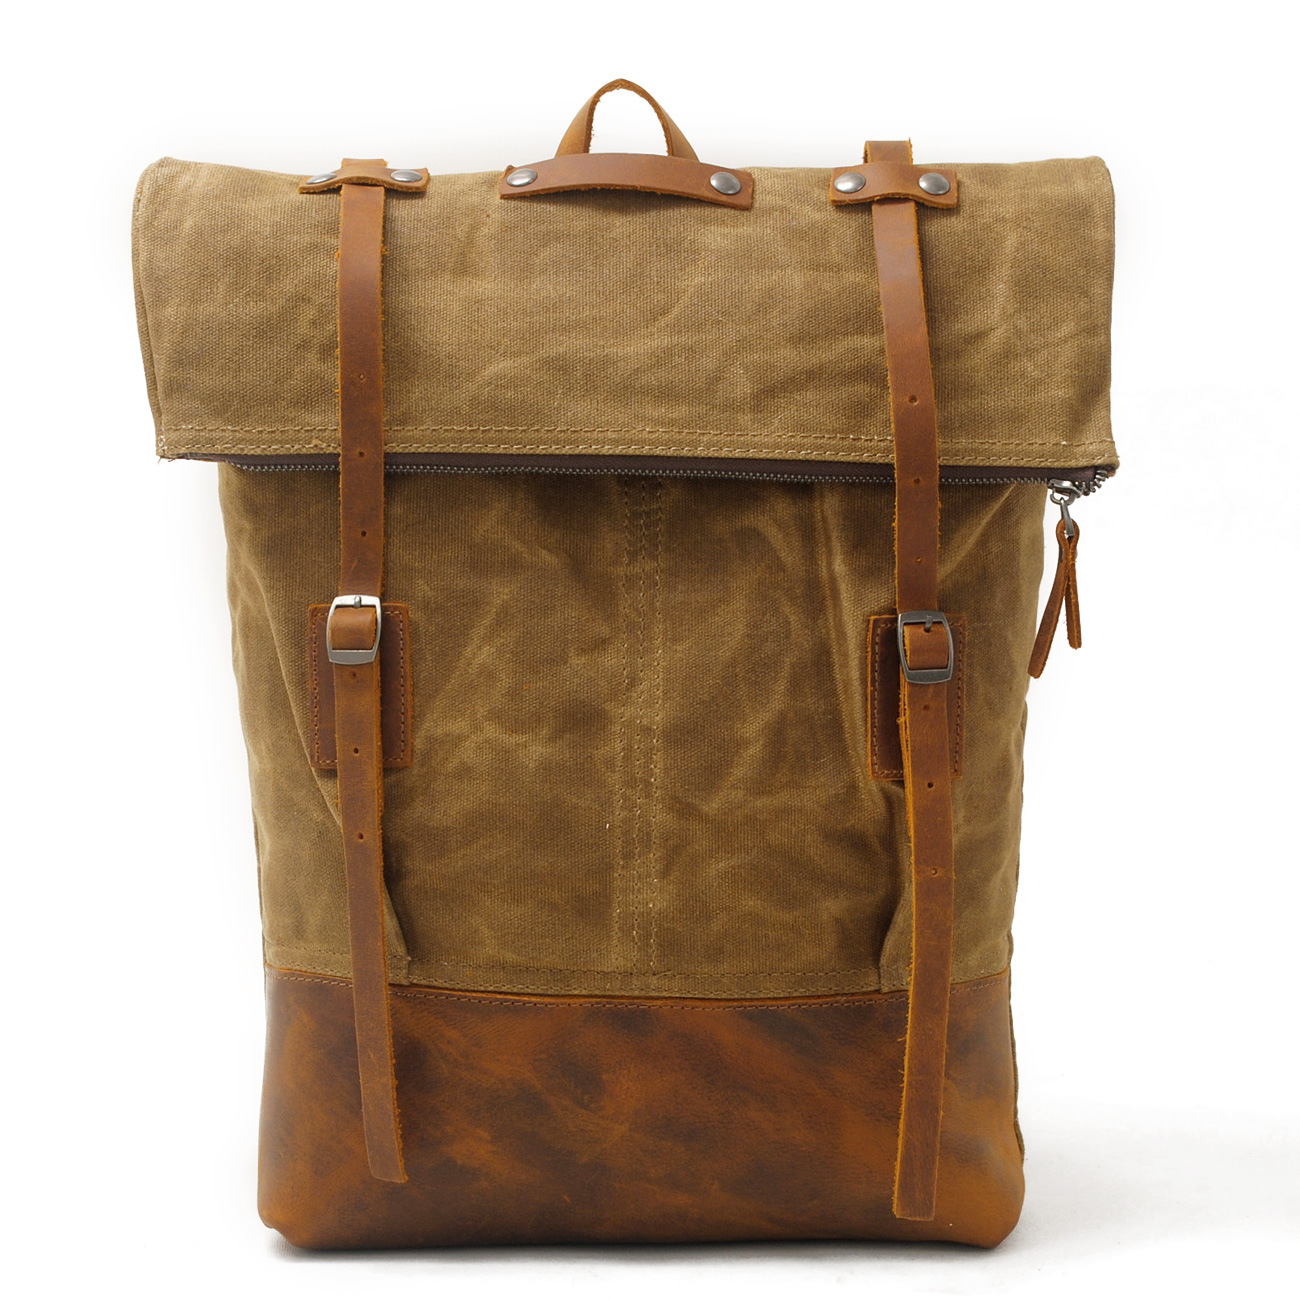 Canvas Shoulder Bag men's leisure backpack batik out door travel bag with head Luxury Cowboy Oil Skin Leather Bags Daypack free shipping 2014 boom bag leisure contracted one shoulder bag chain canvas bag